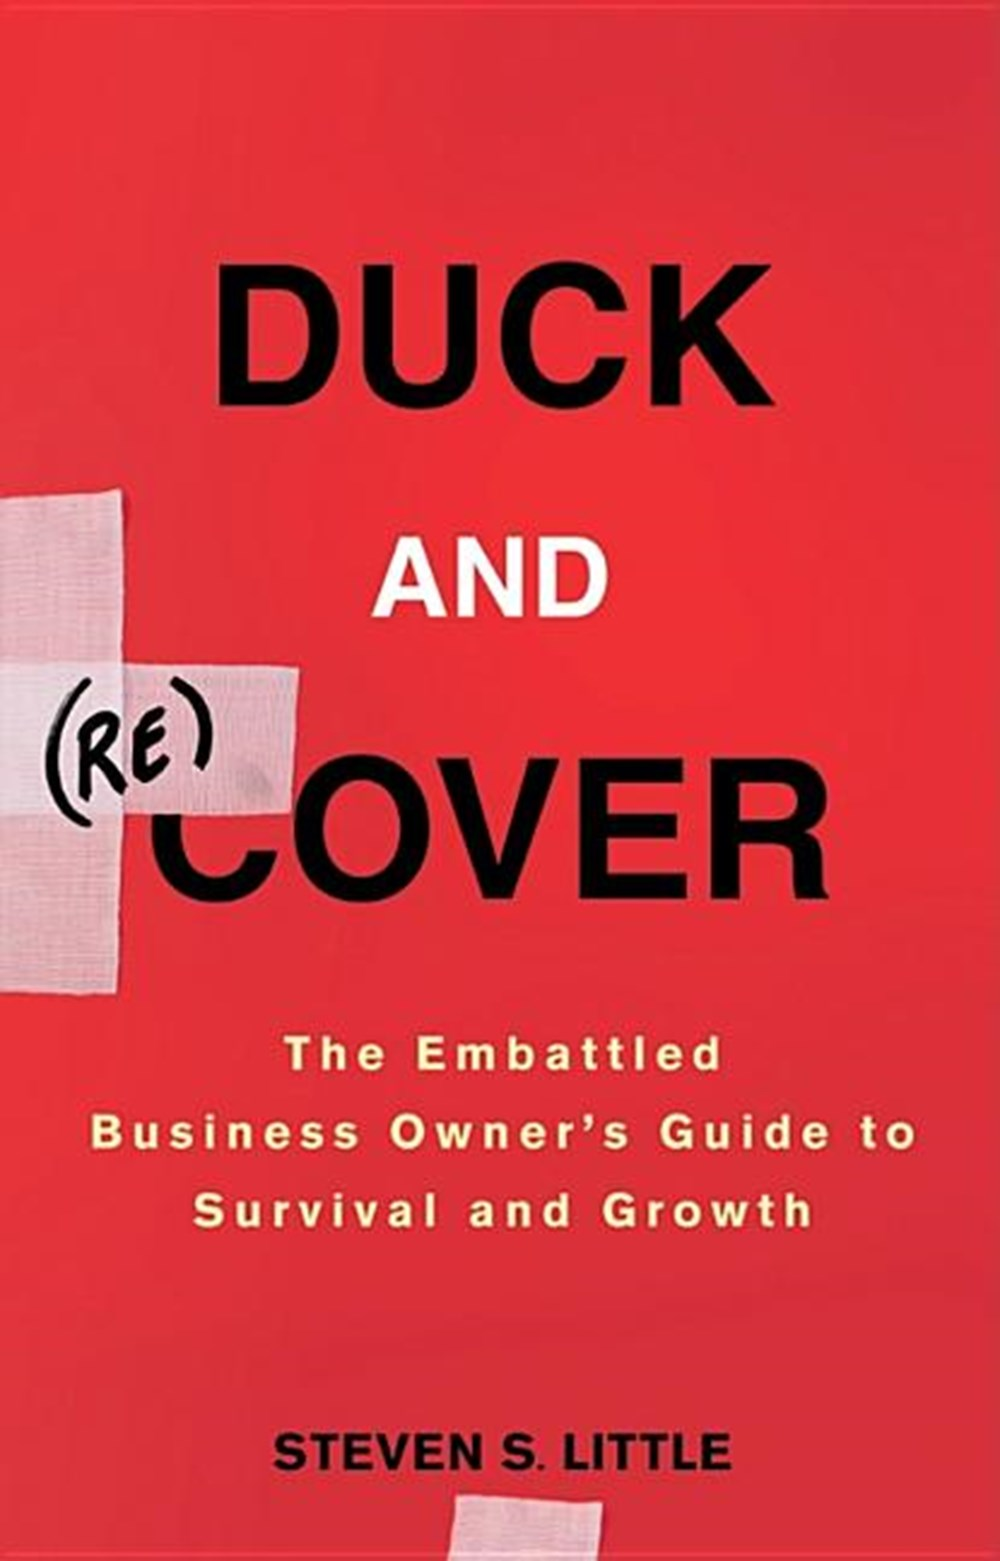 Duck and Recover The Embattled Business Owner's Guide to Survival and Growth